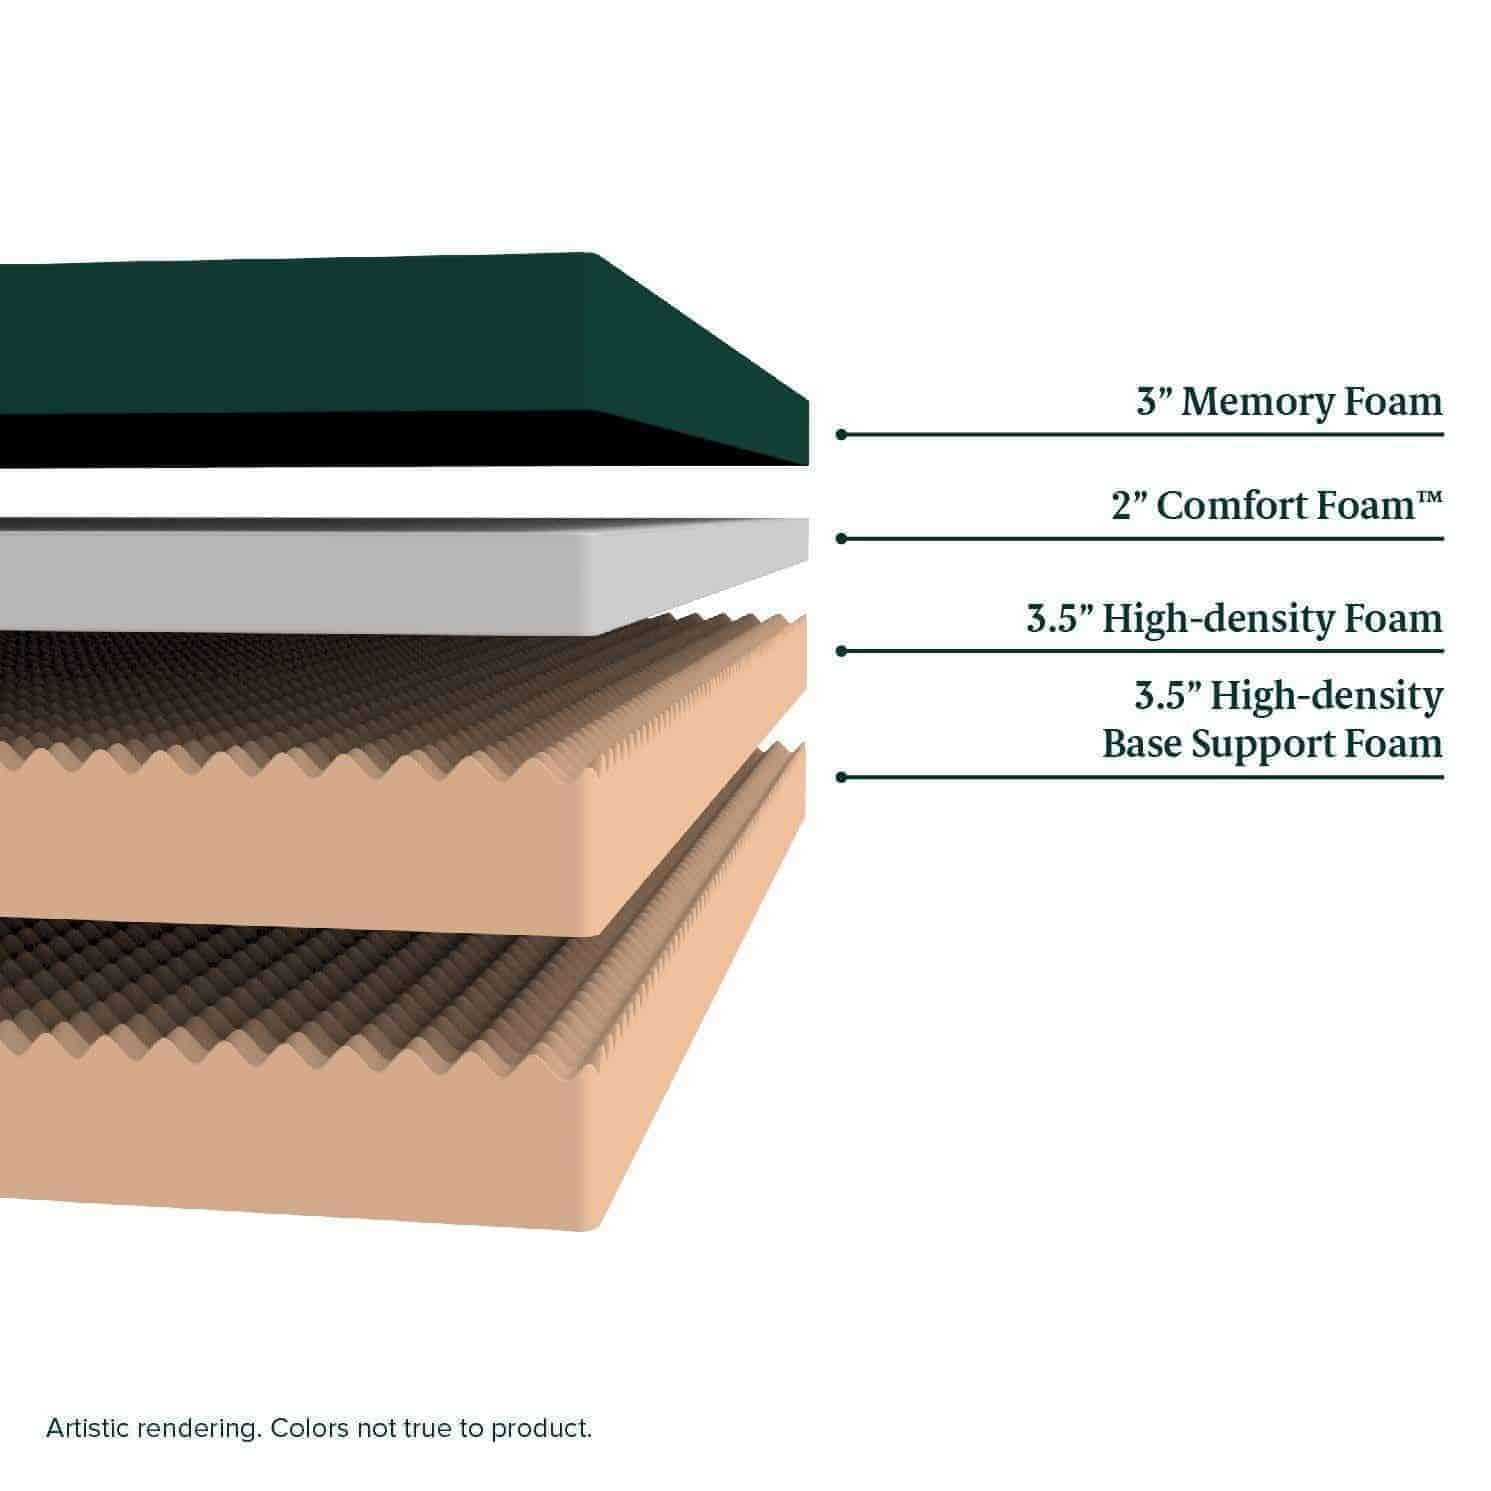 Memory Foam Mattress Layers